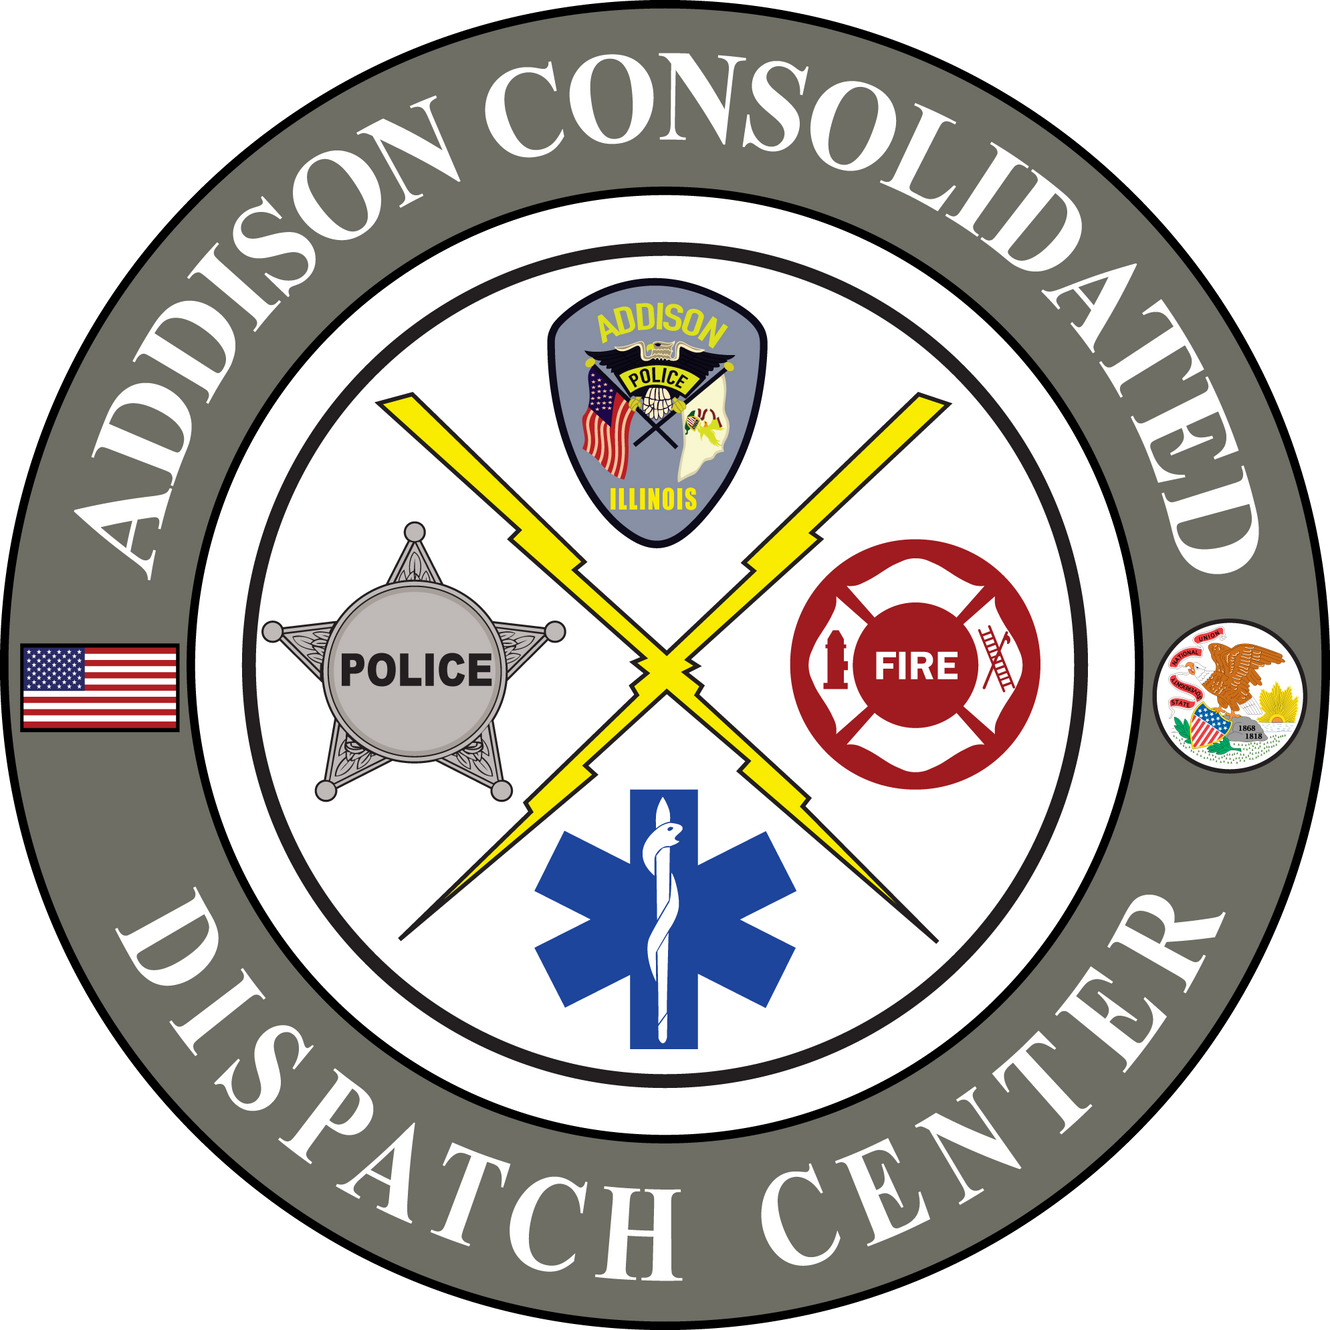 ACDC   Addison   ACDC Dispatch - Addison Consolidated Dispatch Center